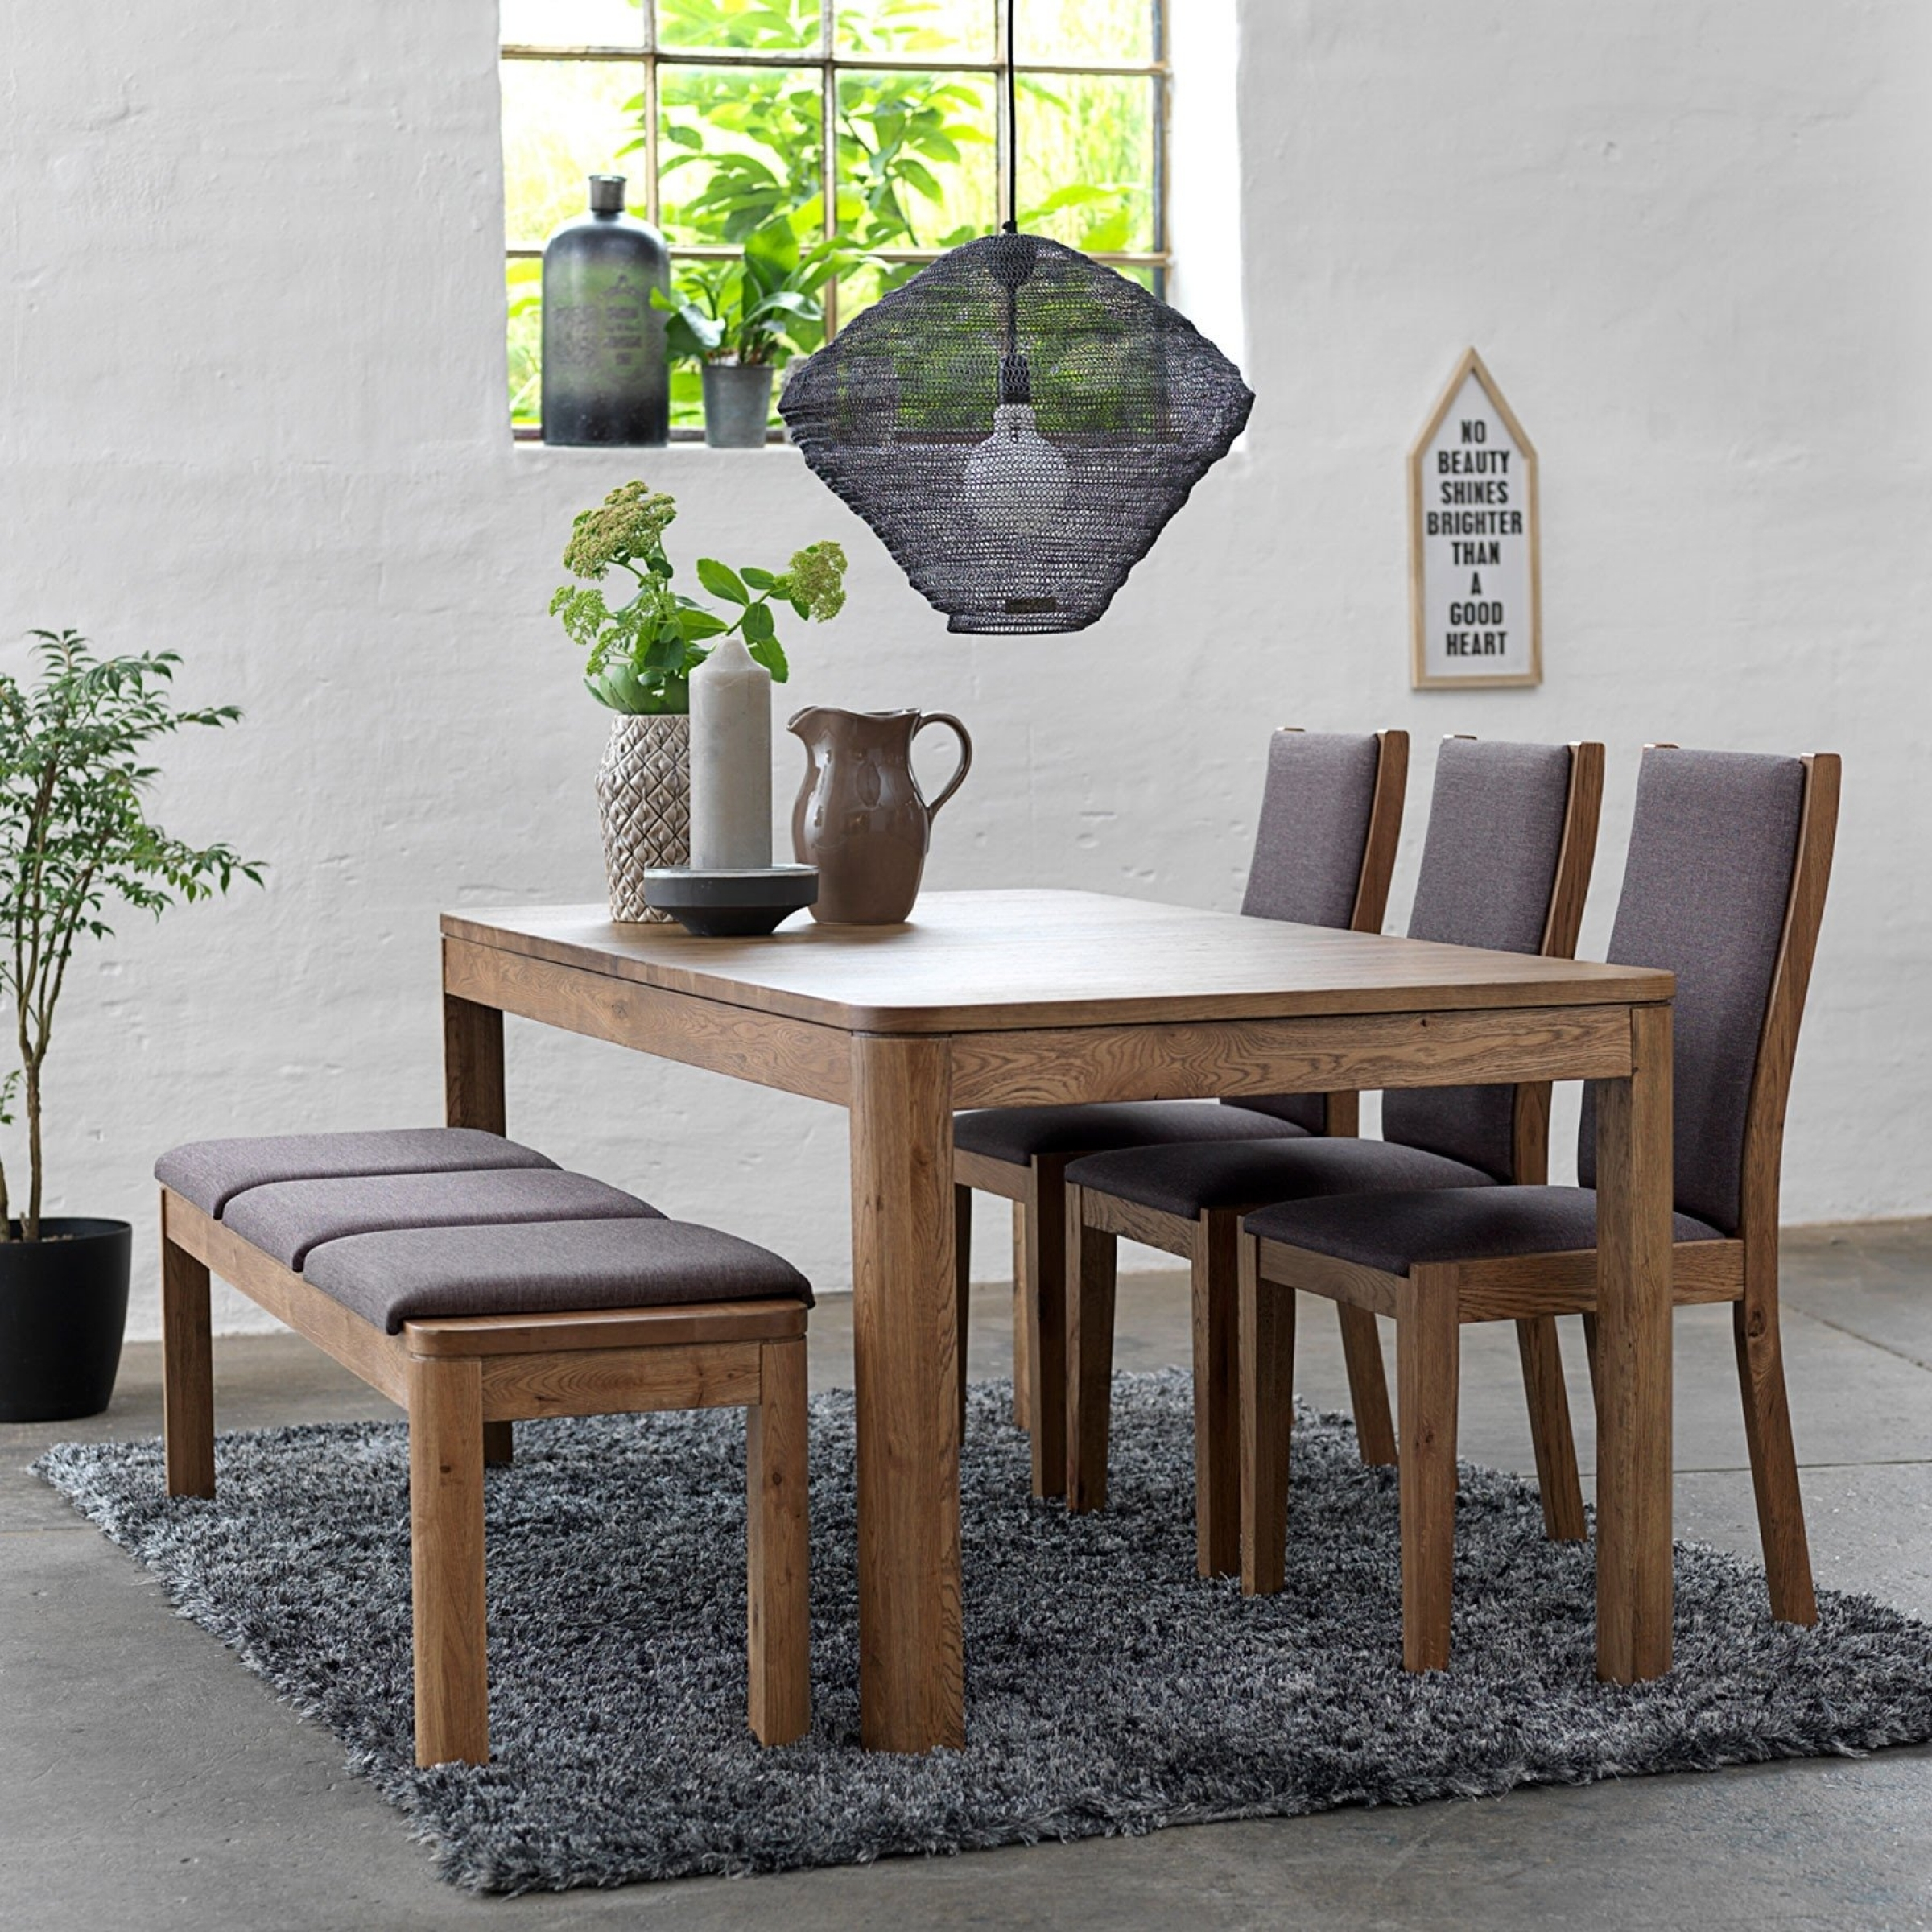 Dining Table With Bench - Visual Hunt